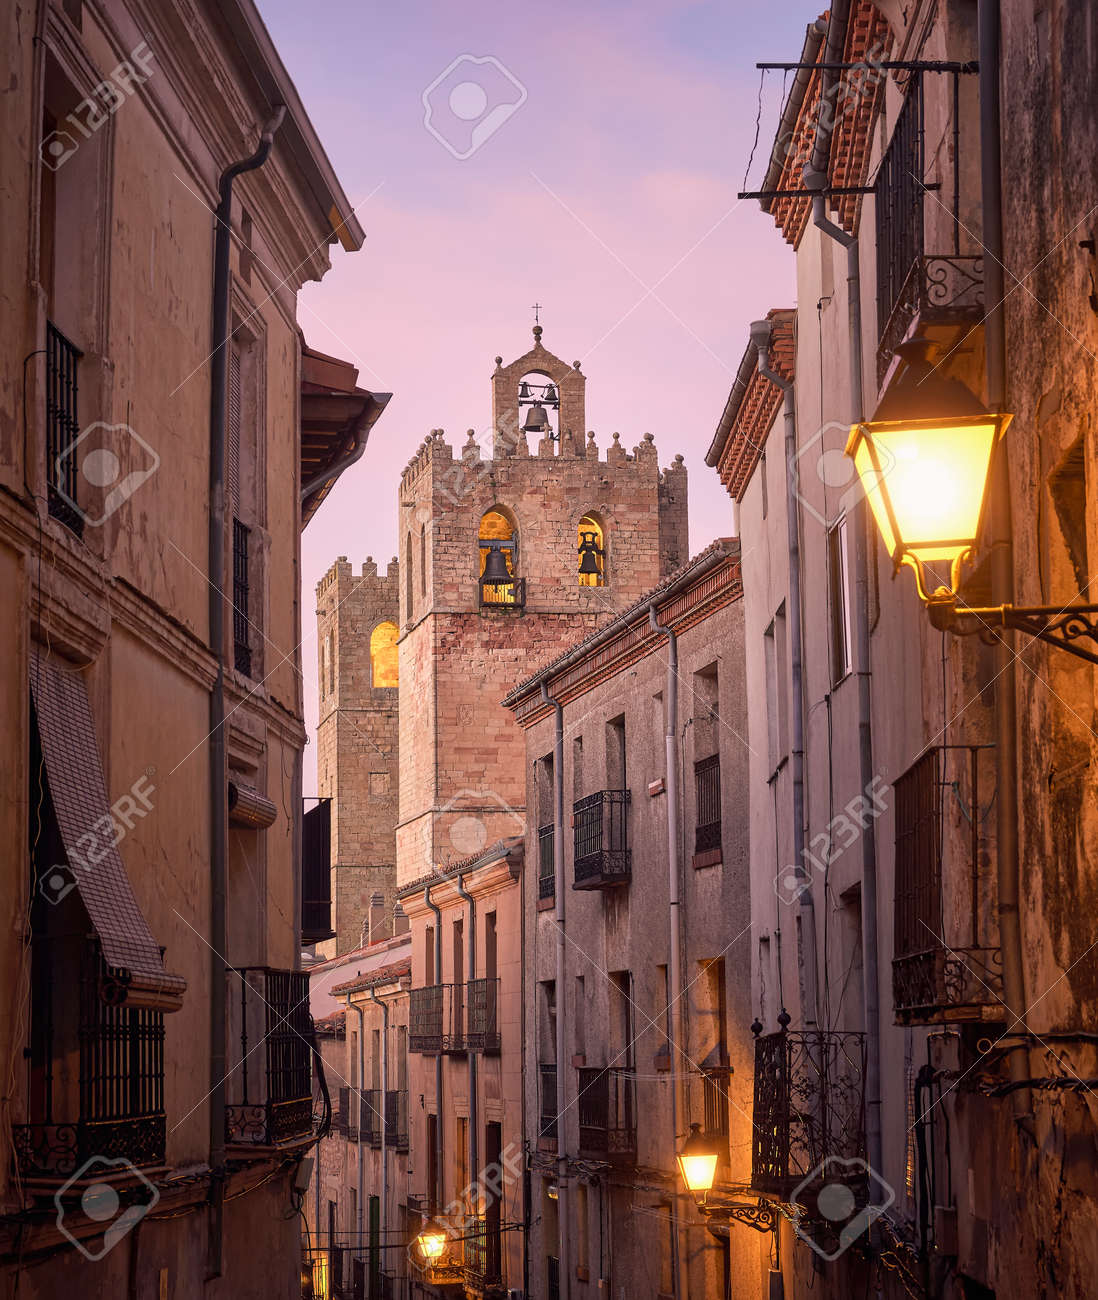 Historic architecture of the streets and tower of the Romanesque cathedral of the city of Siguenza, Guadalajara, Spain, at sunset - 157602593